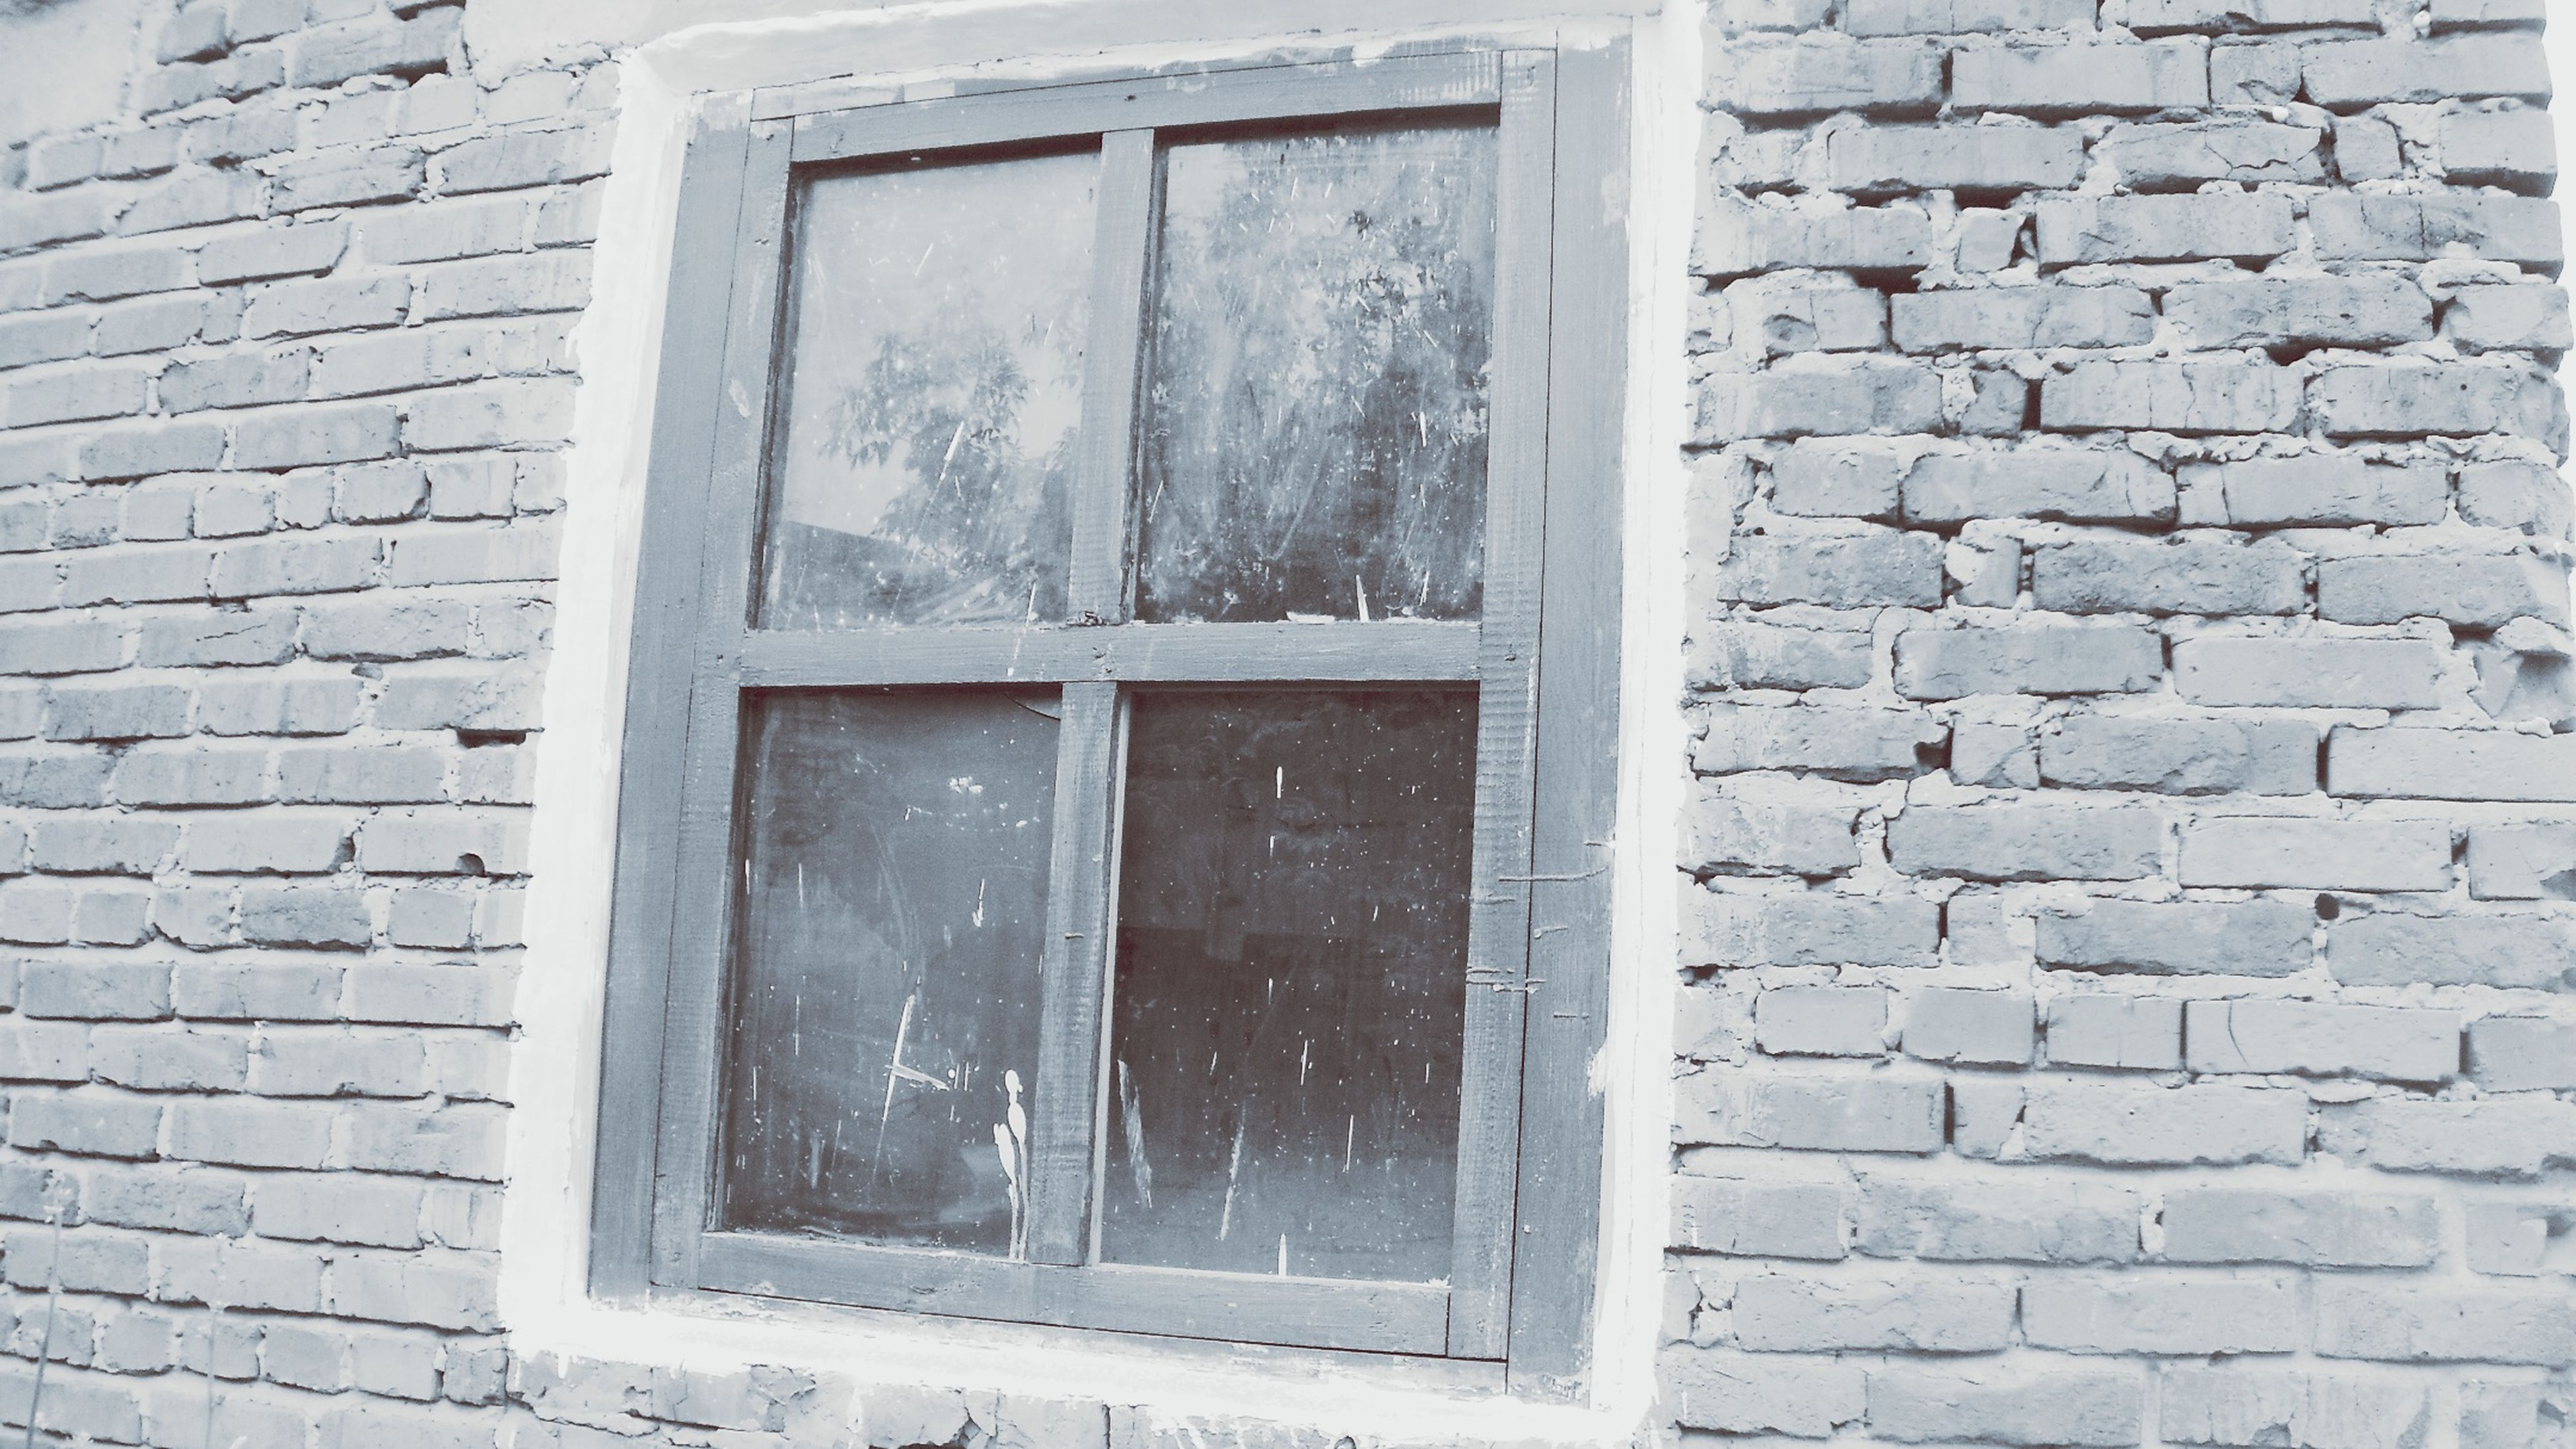 building exterior, architecture, built structure, window, brick wall, house, wall - building feature, closed, door, old, wall, day, outdoors, weathered, close-up, no people, glass - material, stone wall, residential structure, safety